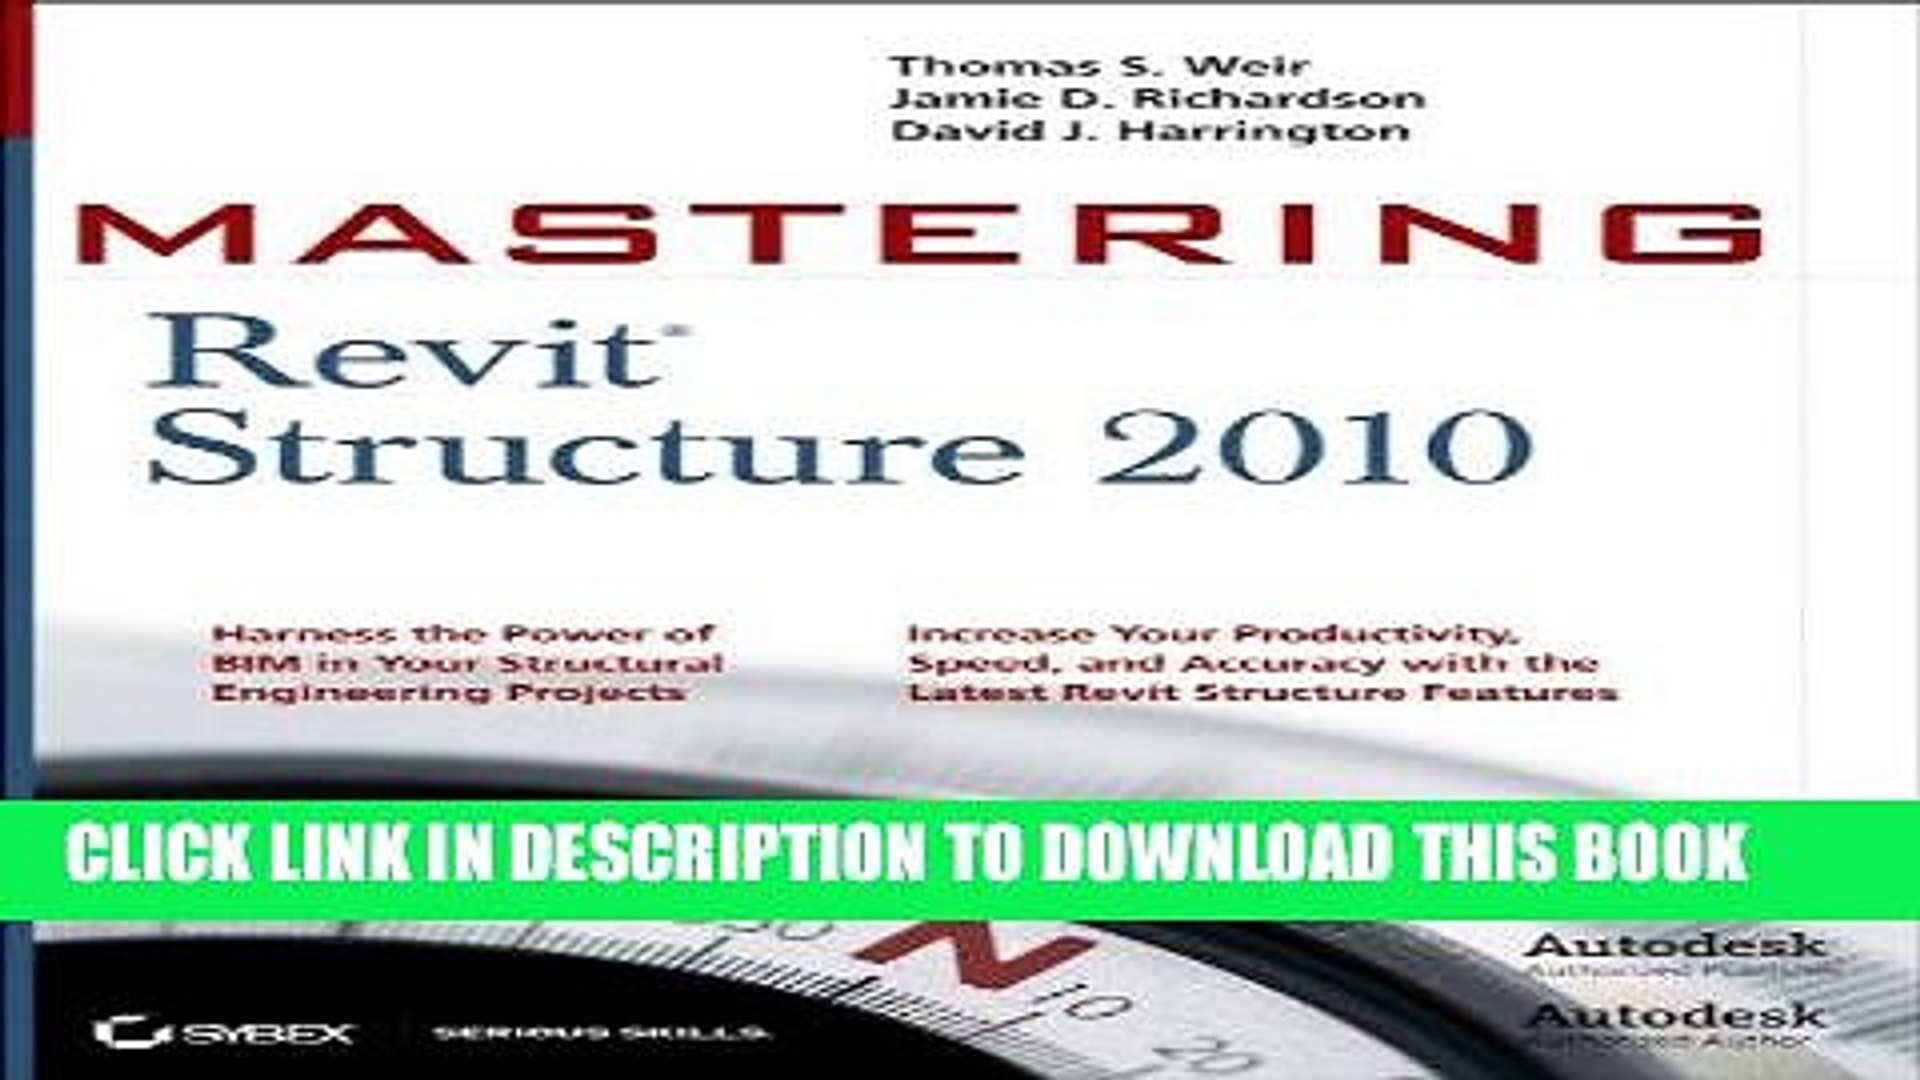 Mastering Revit Structure 2010 has been added